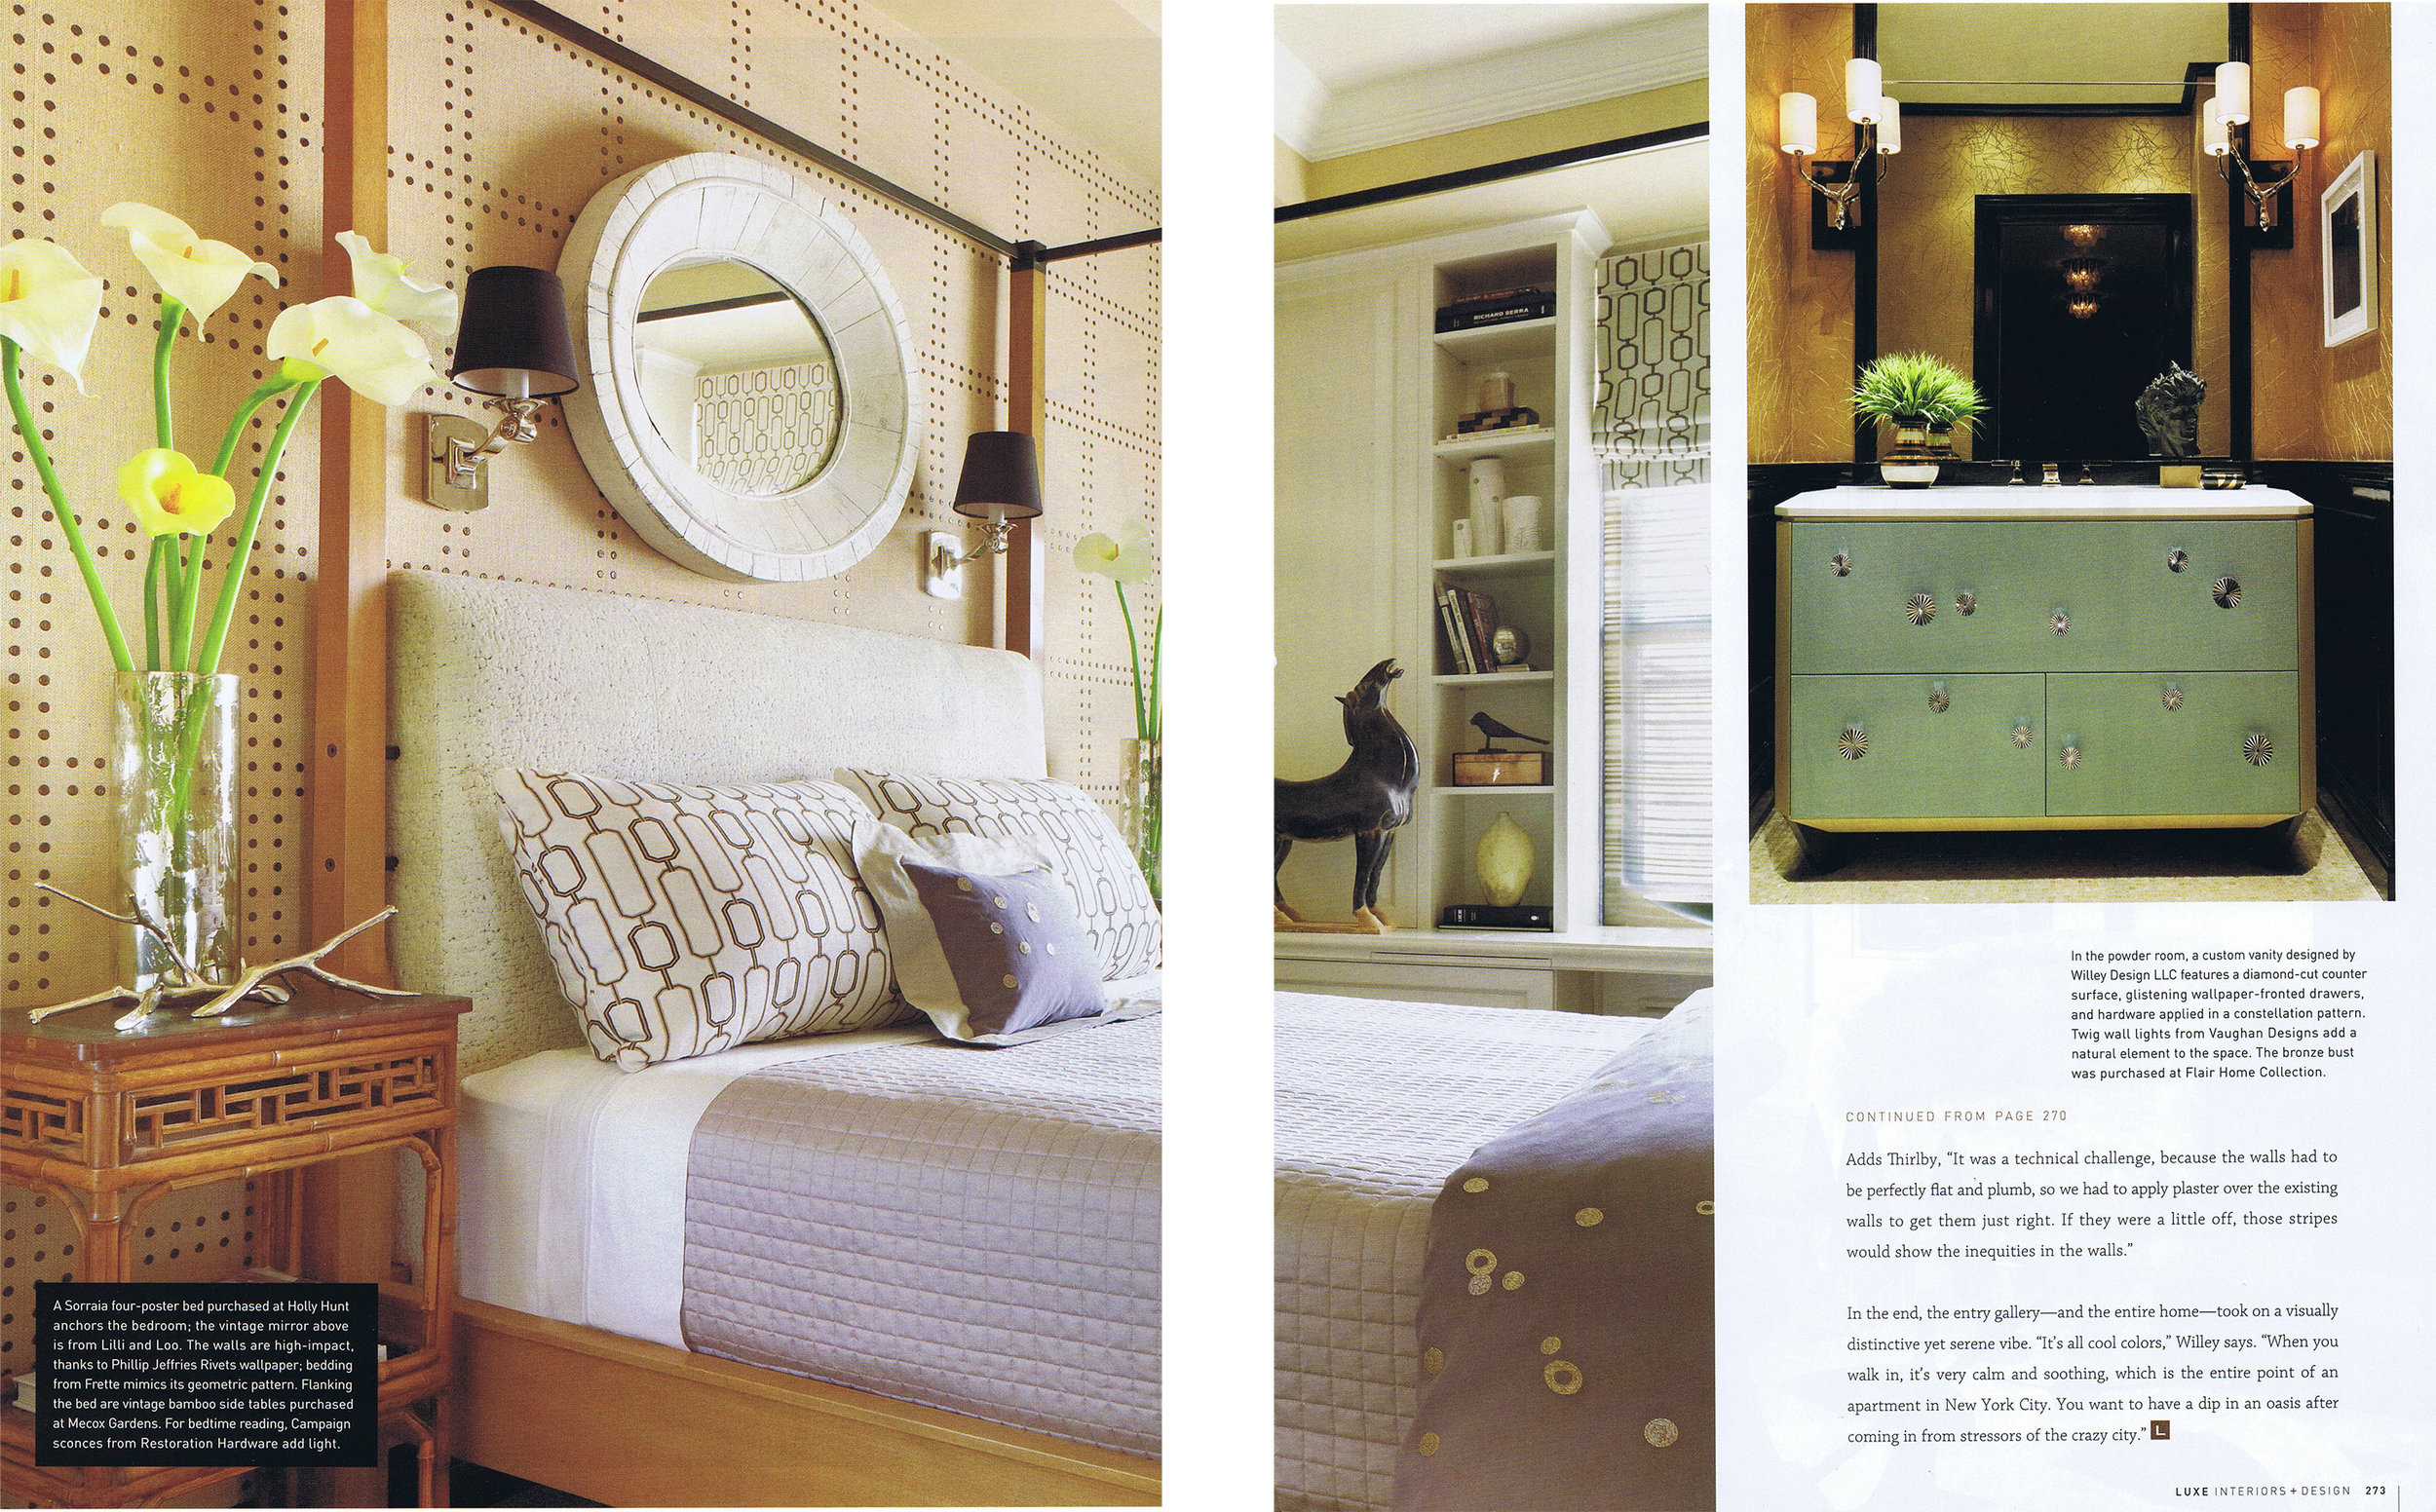 Luxe Interiors + Design 2013 Fall - Page 13 & 14.jpg